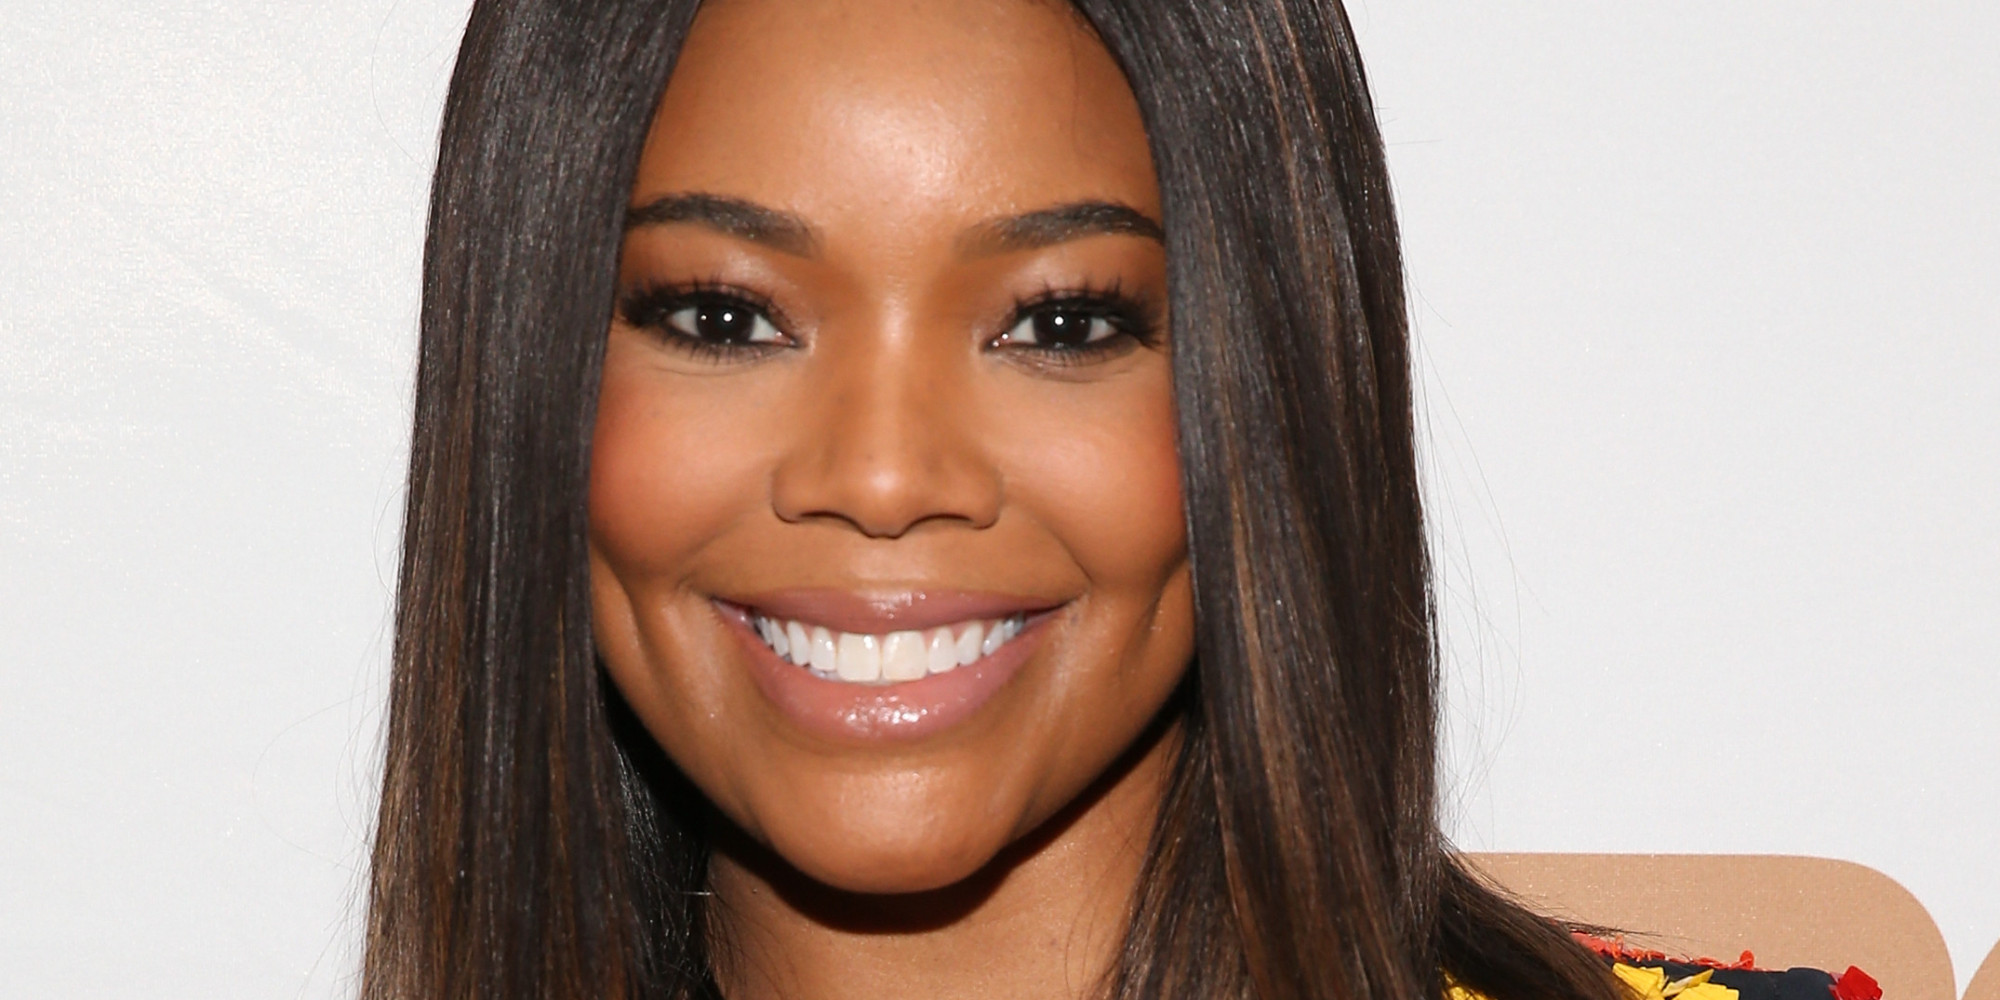 gabrielle union to launch natural hair care line for black